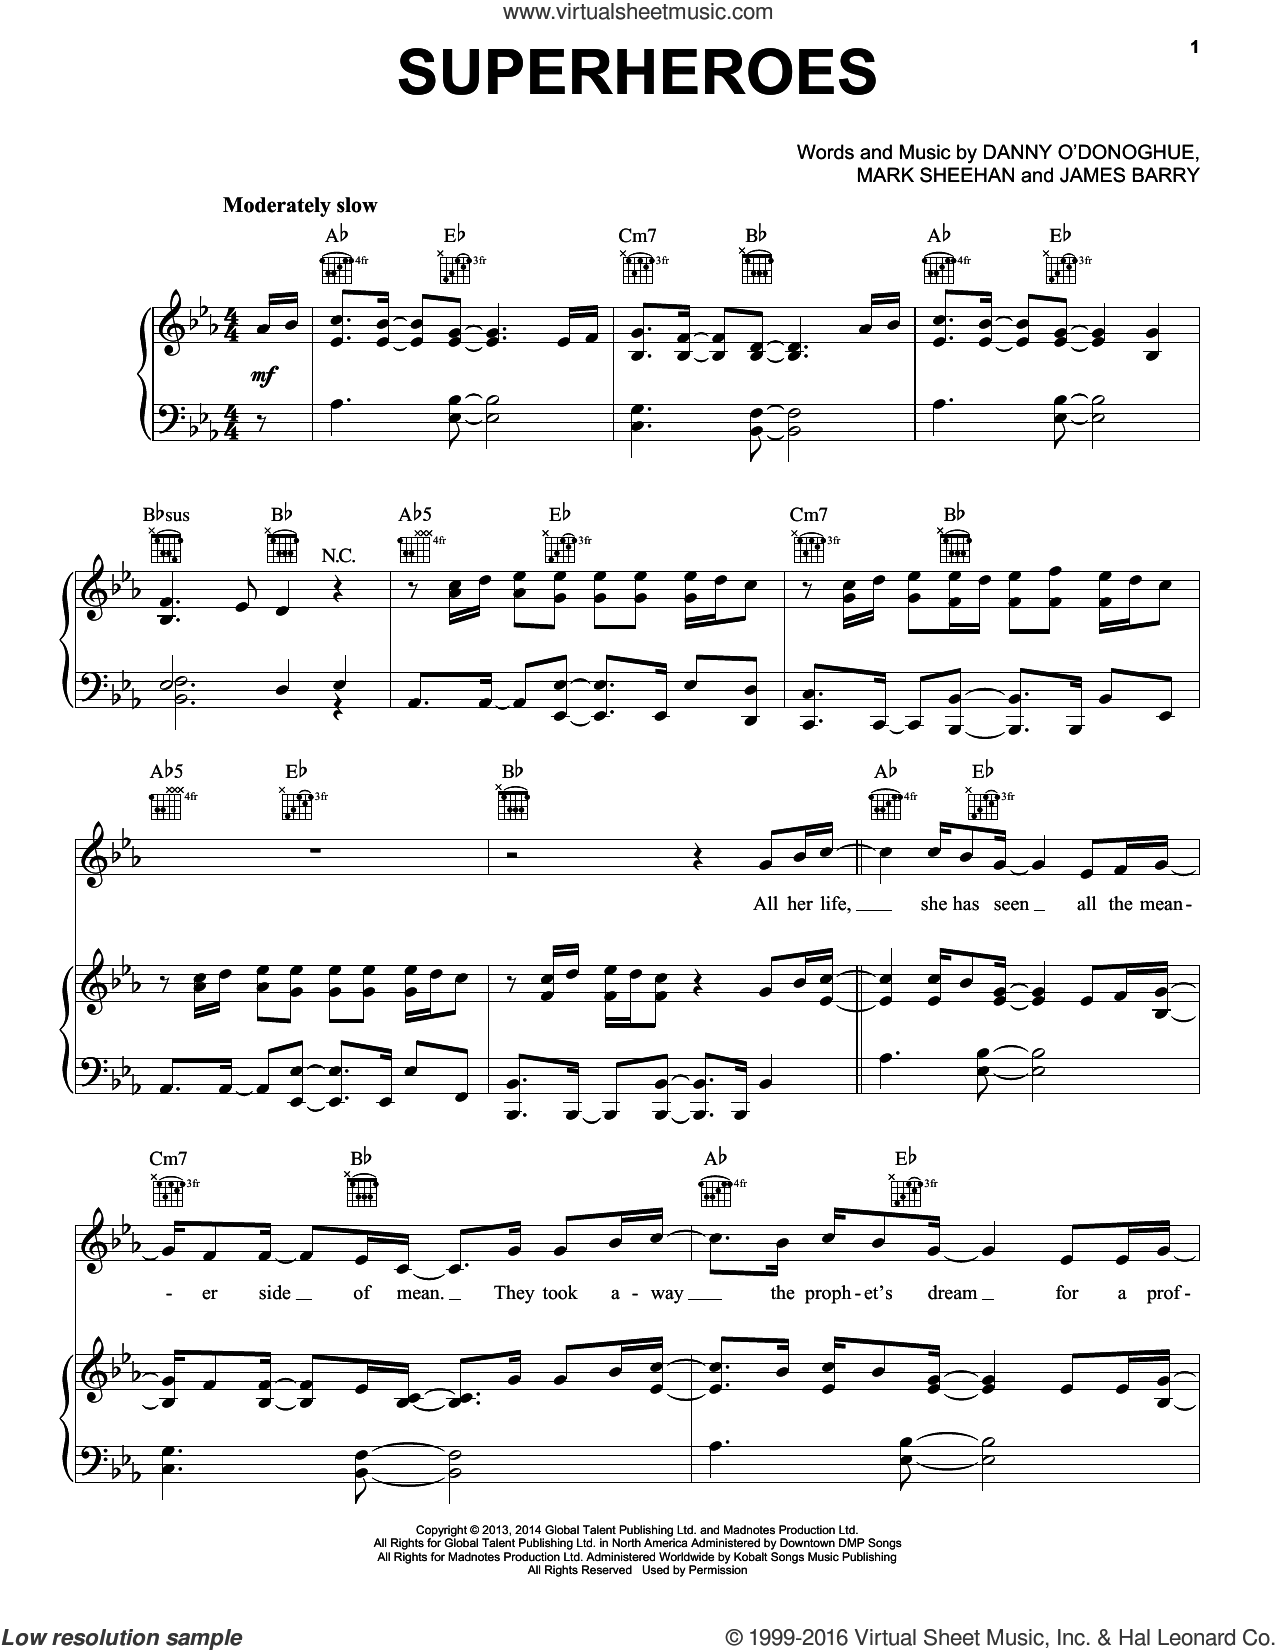 Superheroes sheet music for voice, piano or guitar by The Script, James Barry and Mark Sheehan, intermediate skill level